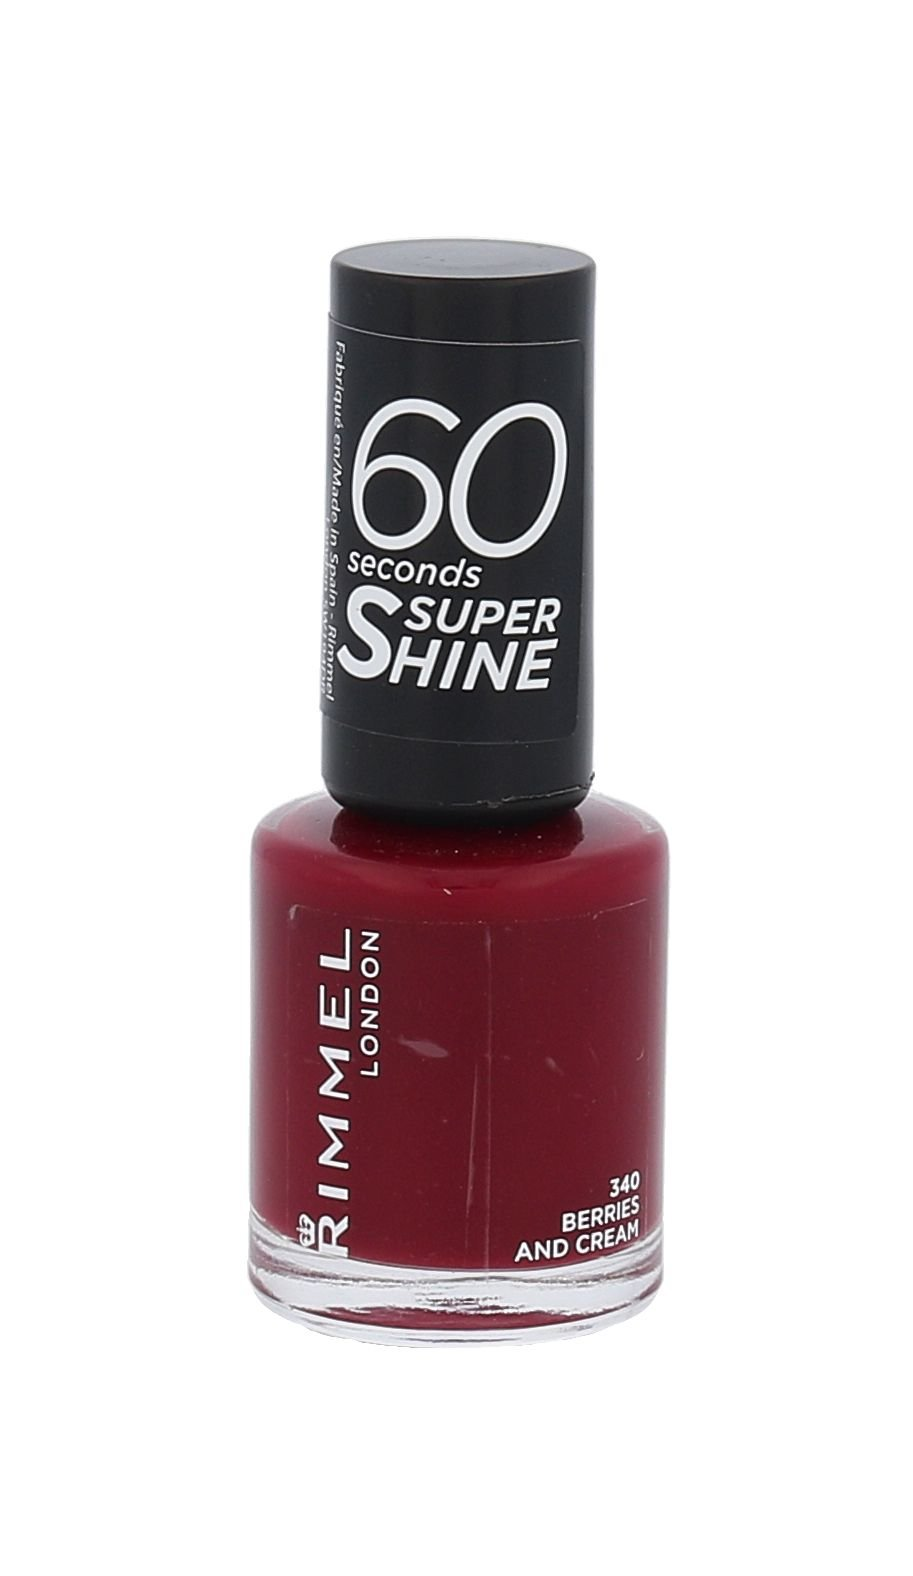 Rimmel London 60 Seconds Cosmetic 8ml 340 Berries And Cream